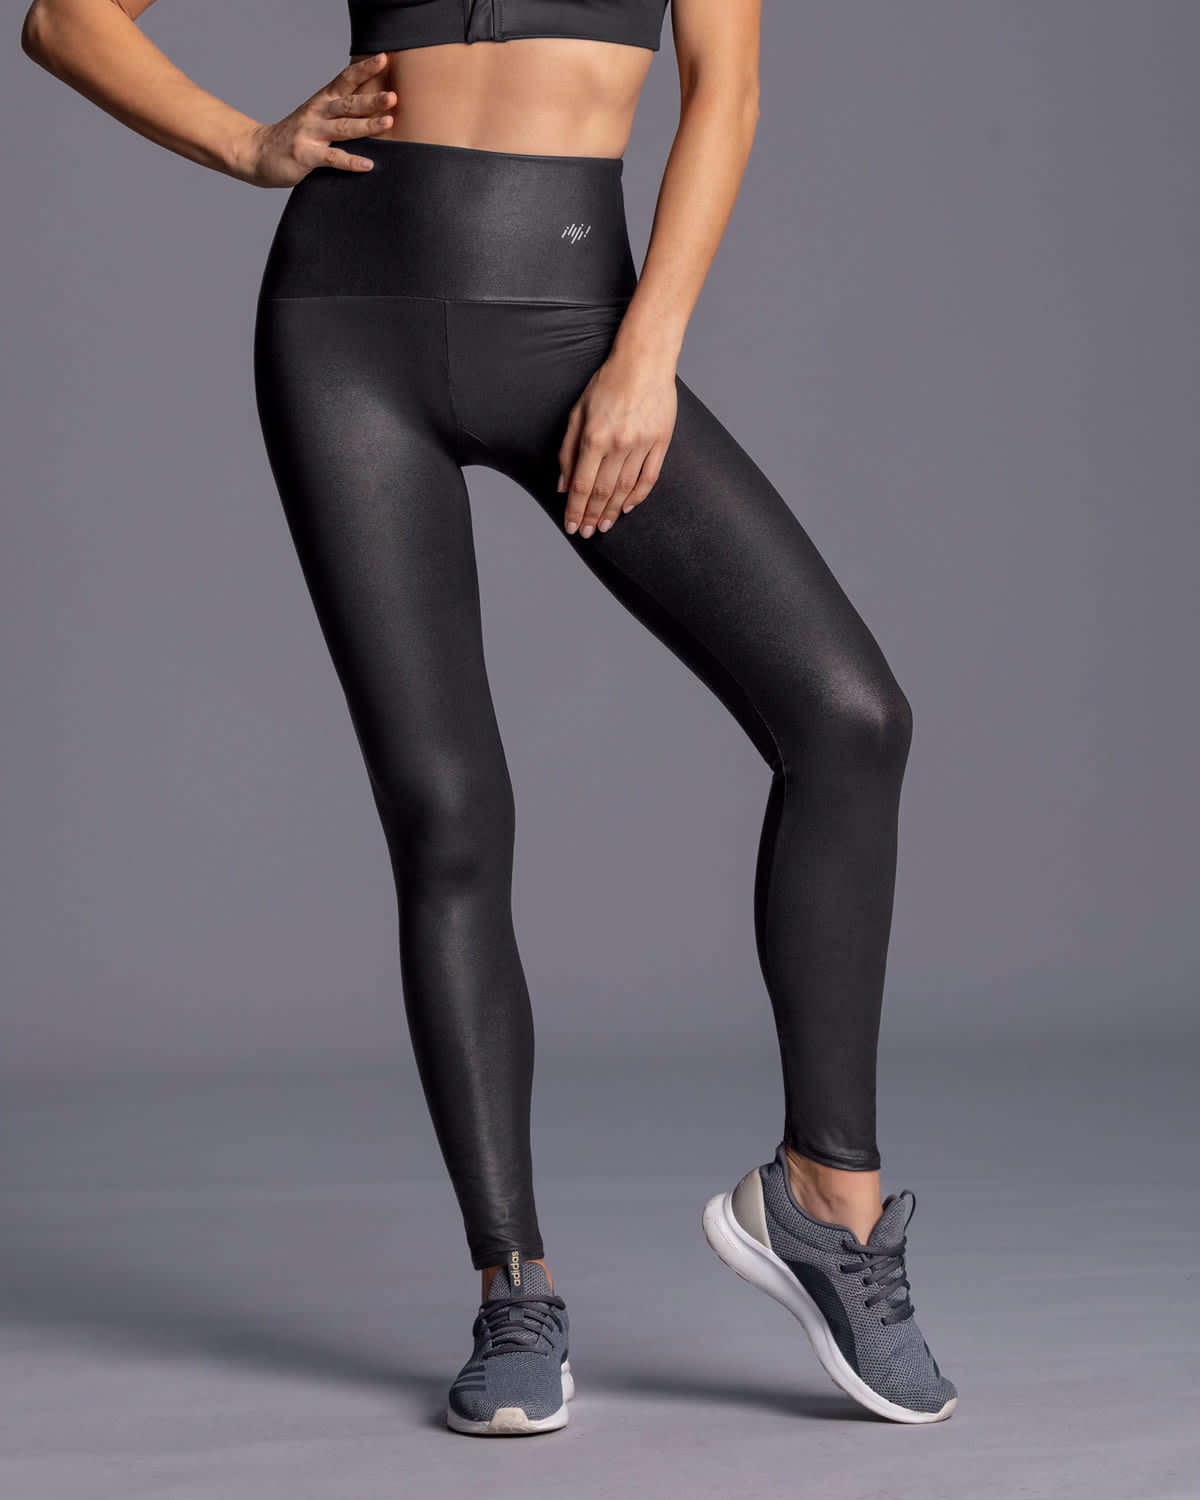 ActiveLife Leather Look High-Waisted Compression Legging